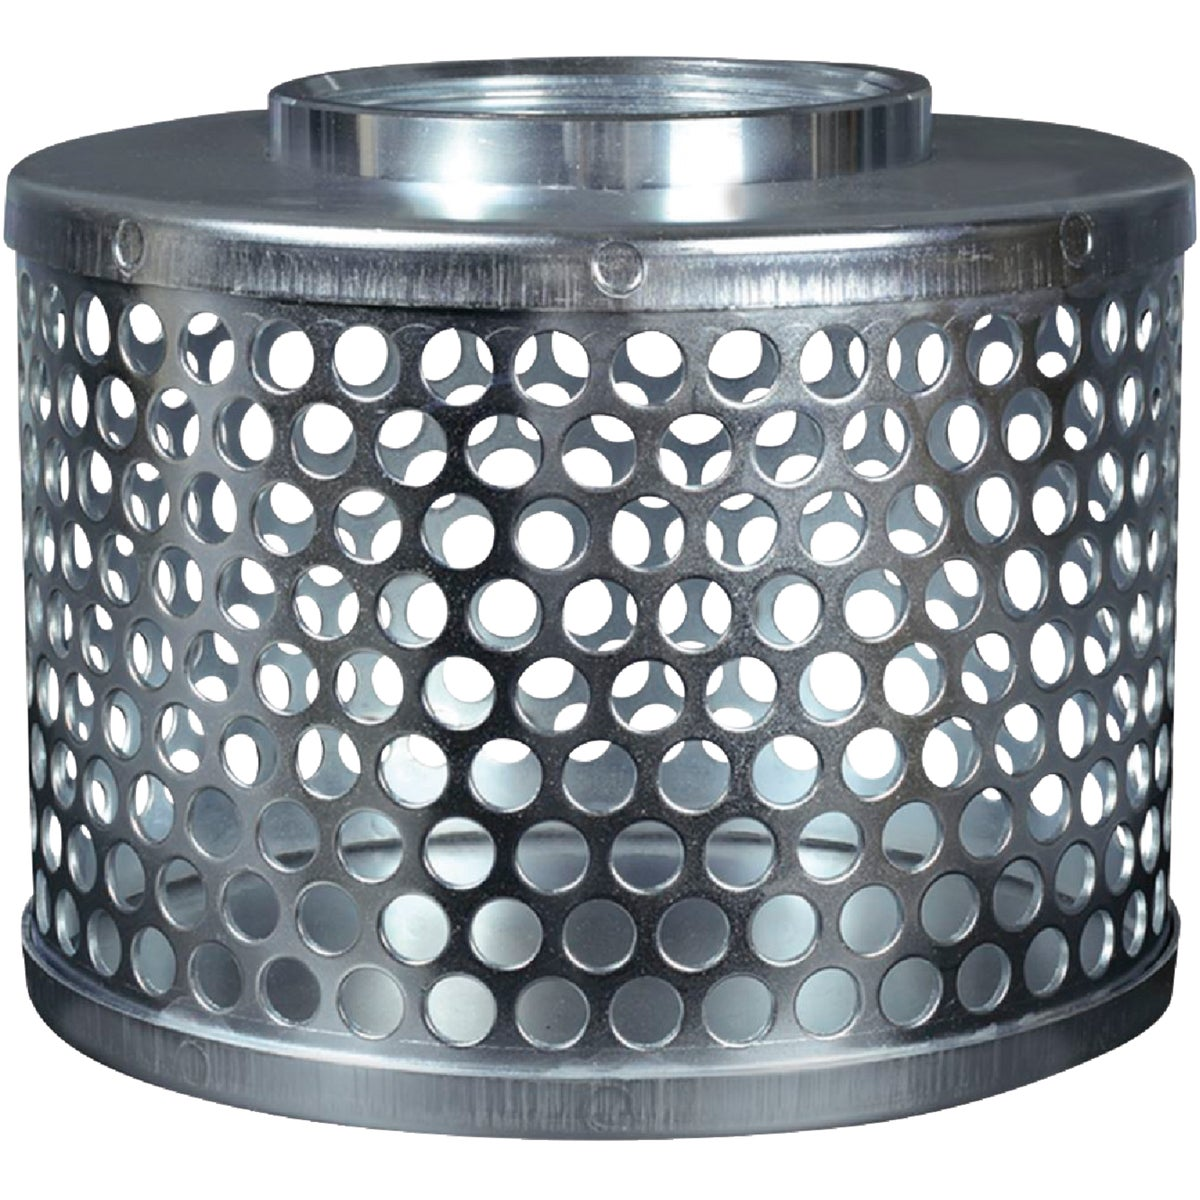 STEEL HOSE STRAINER